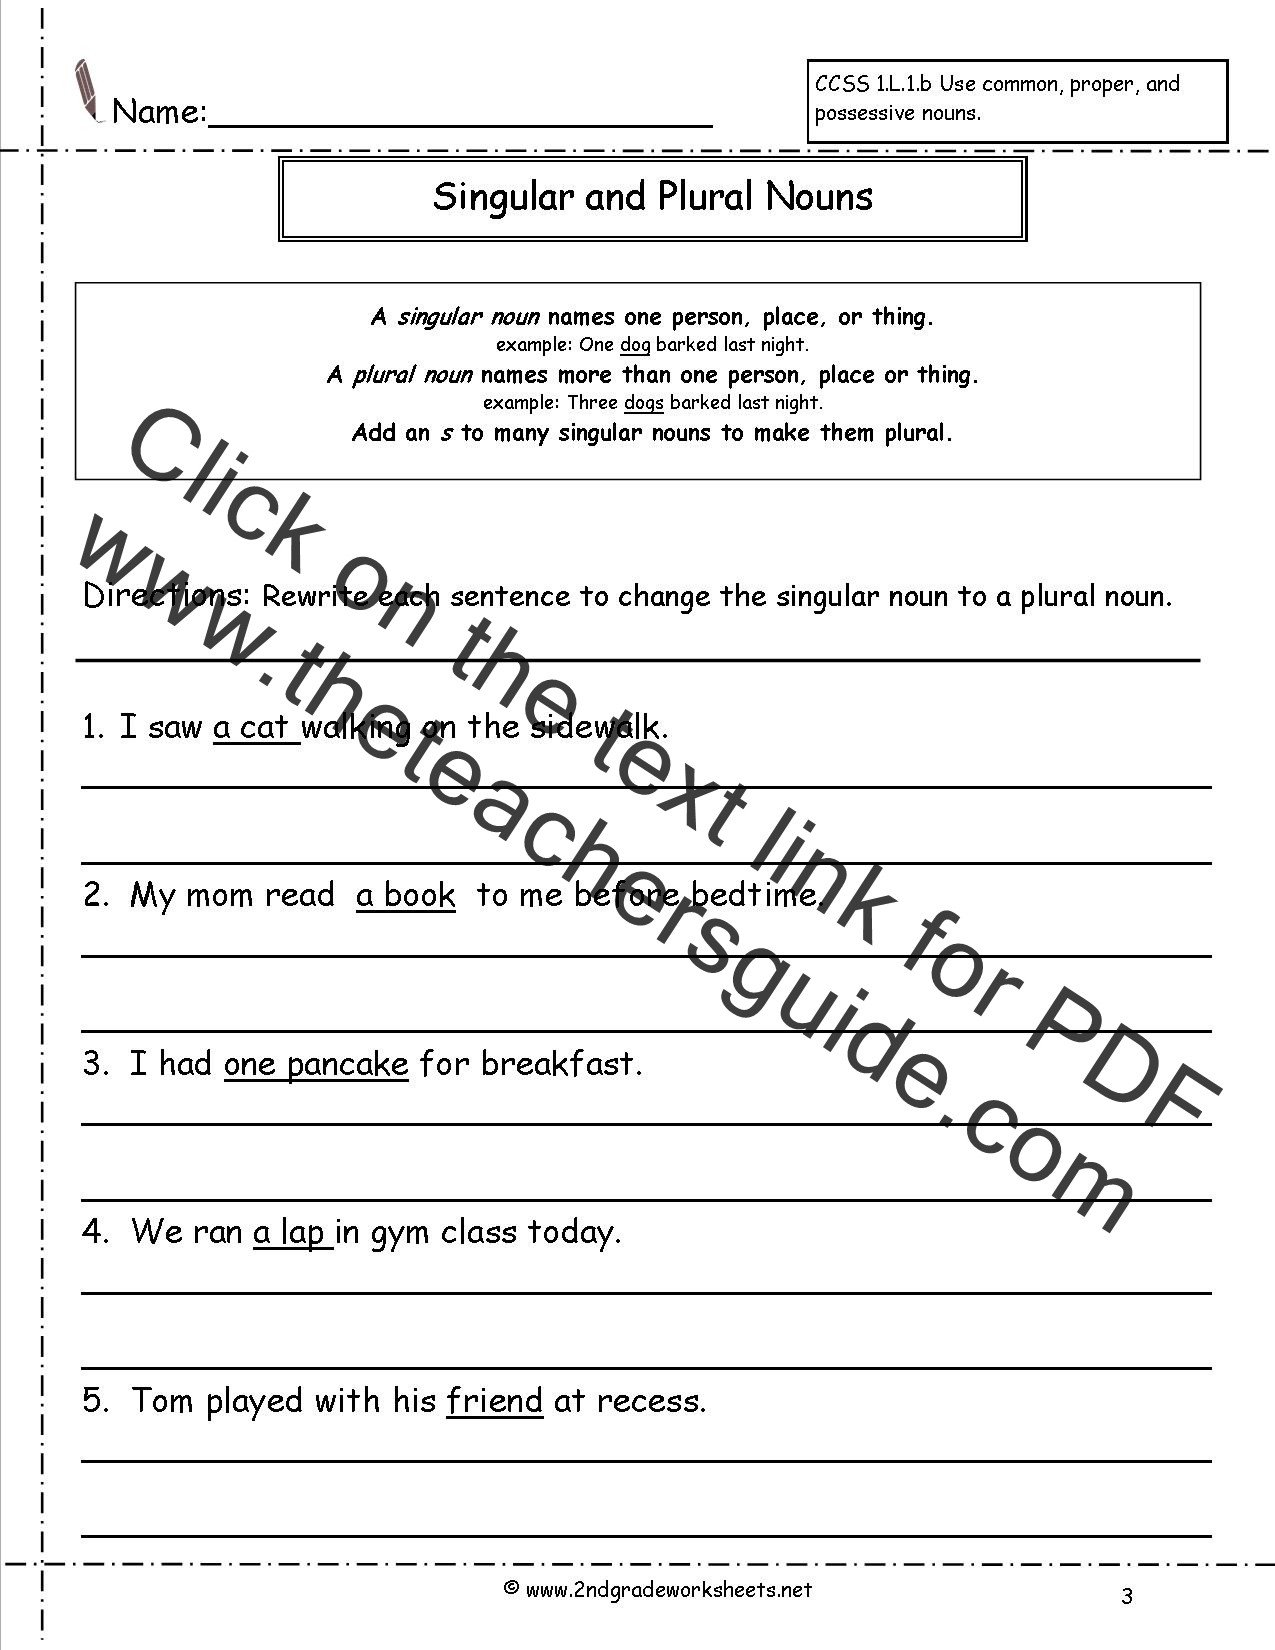 Free Irregular Plural Nouns Worksheet Singular and Plural Nouns Worksheets